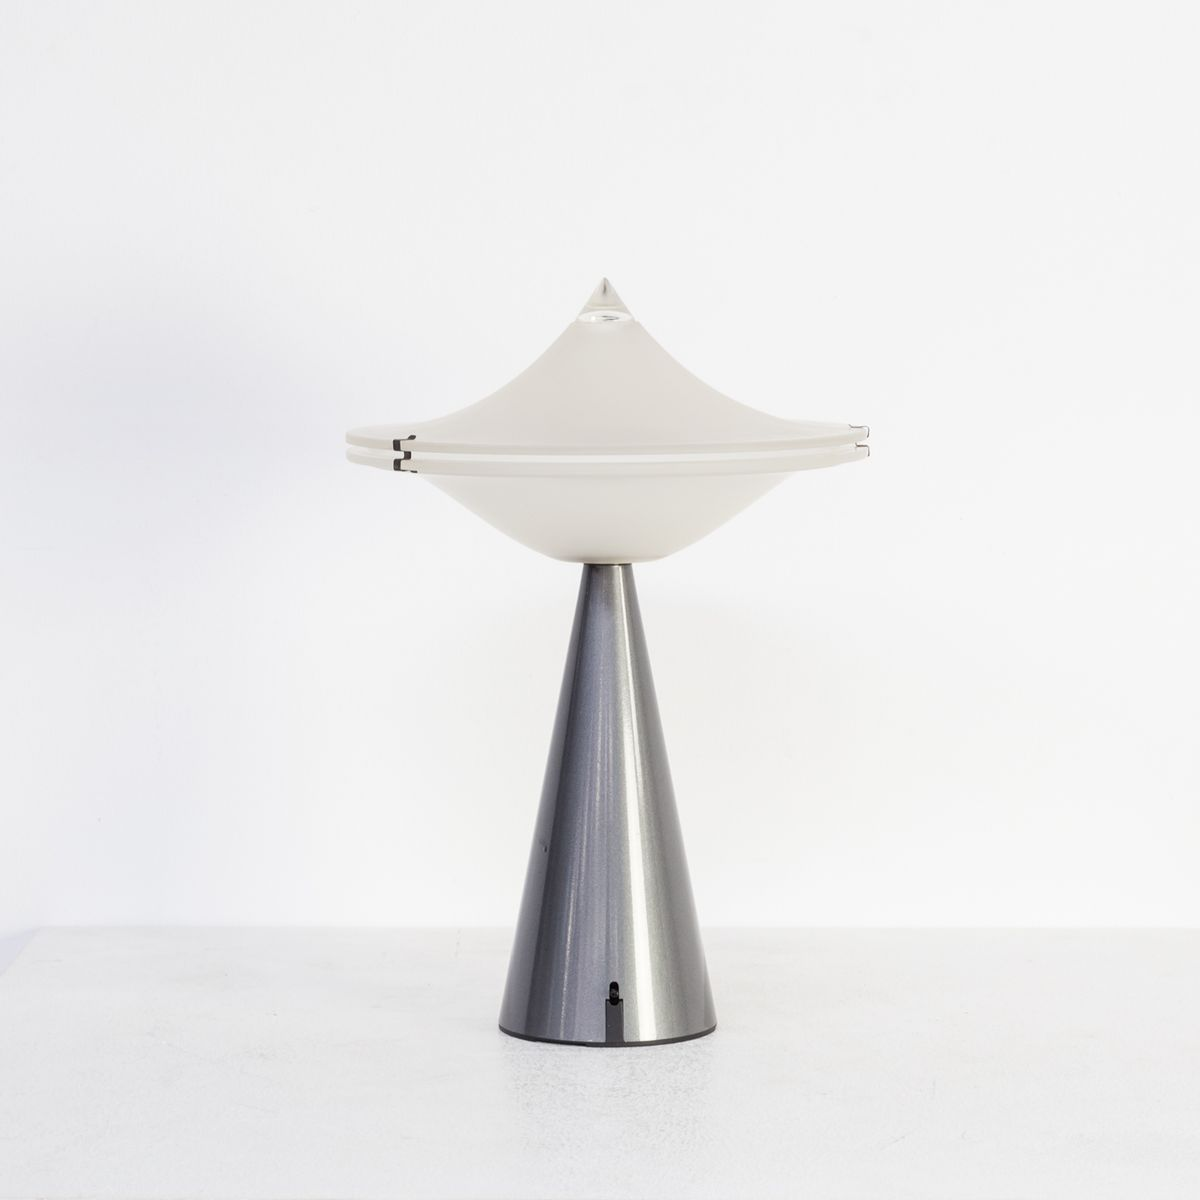 Aliën Table Lamp by Cesare Lacca for Tre Ci Luce, 1970s for sale at ...